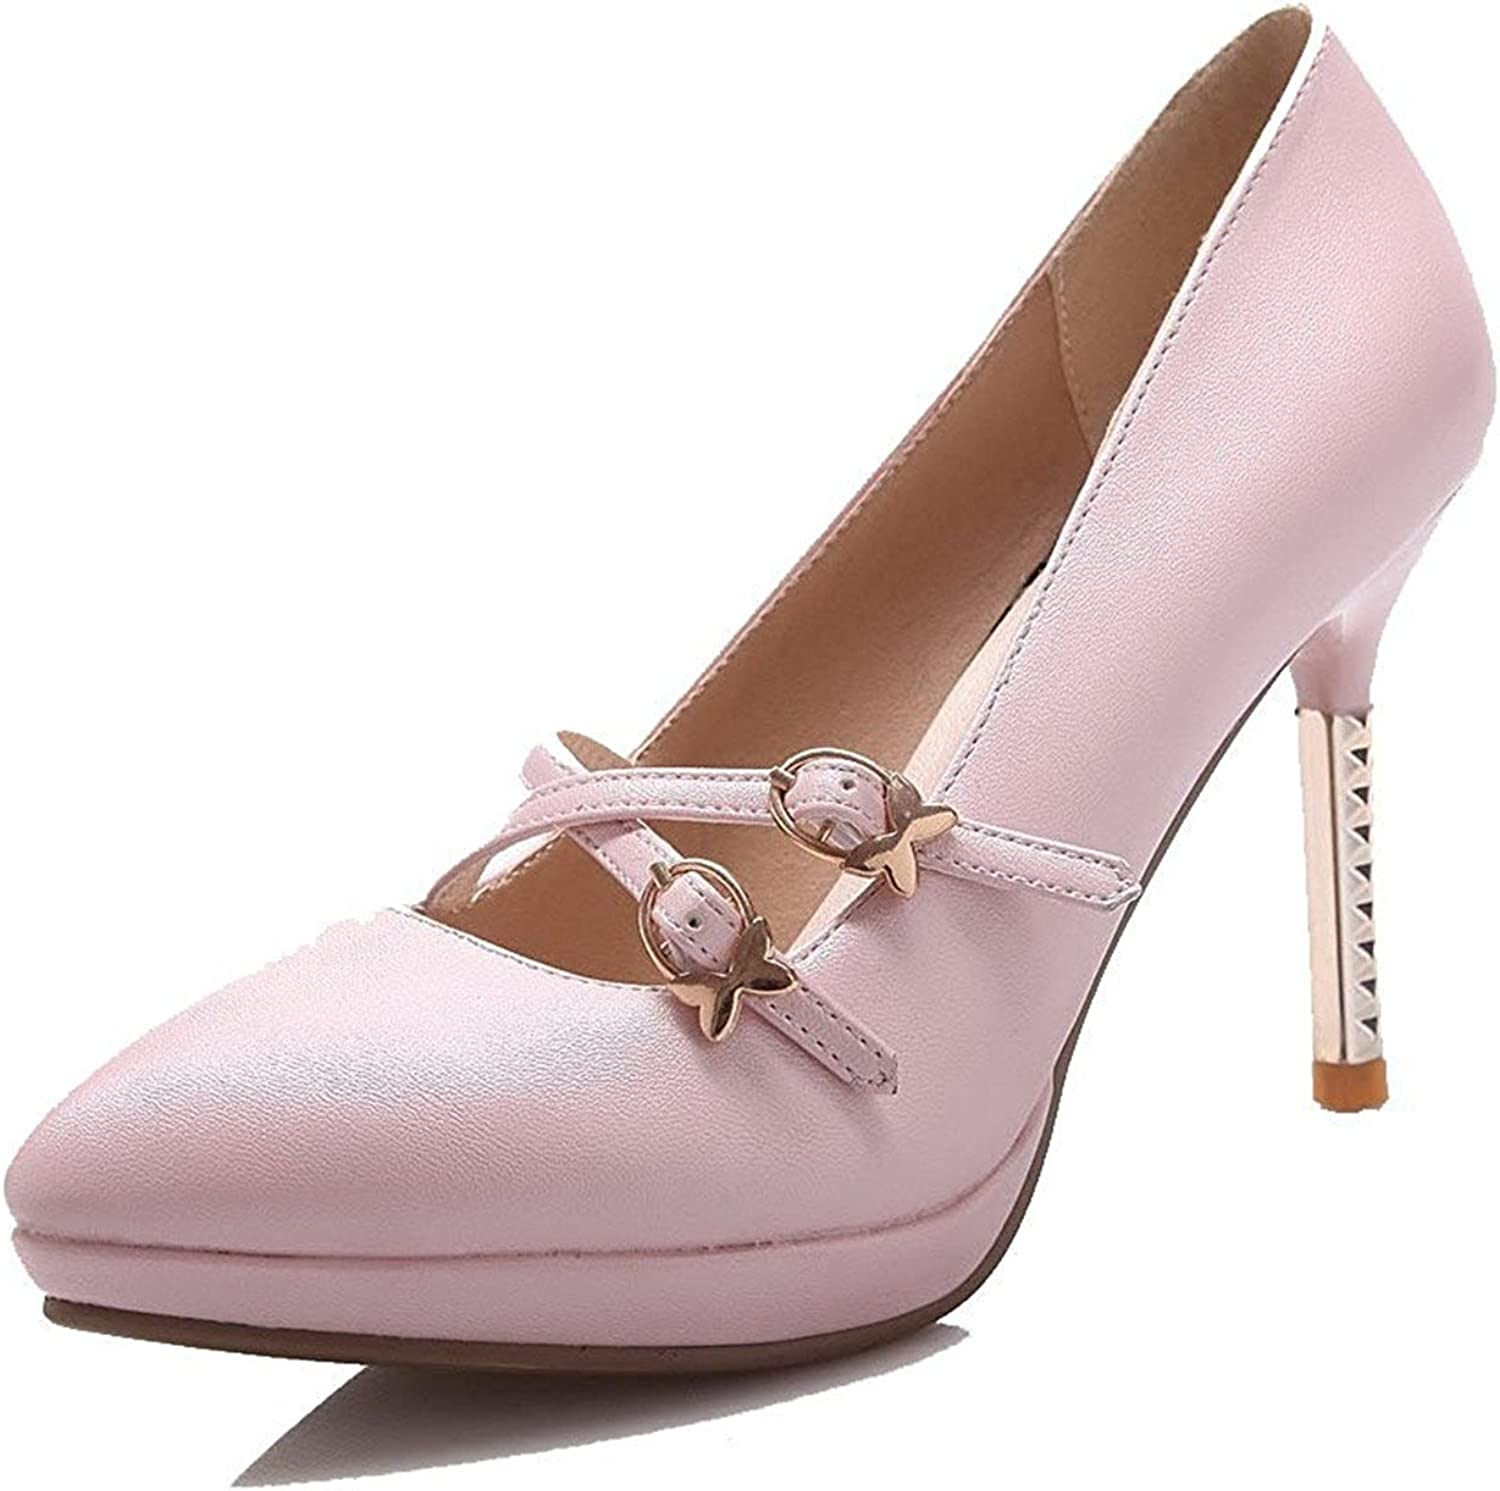 Tirahse Comfortable Women's Soft Material Buckle Pointed Closed Toe High-Heels Solid Pumps-shoes